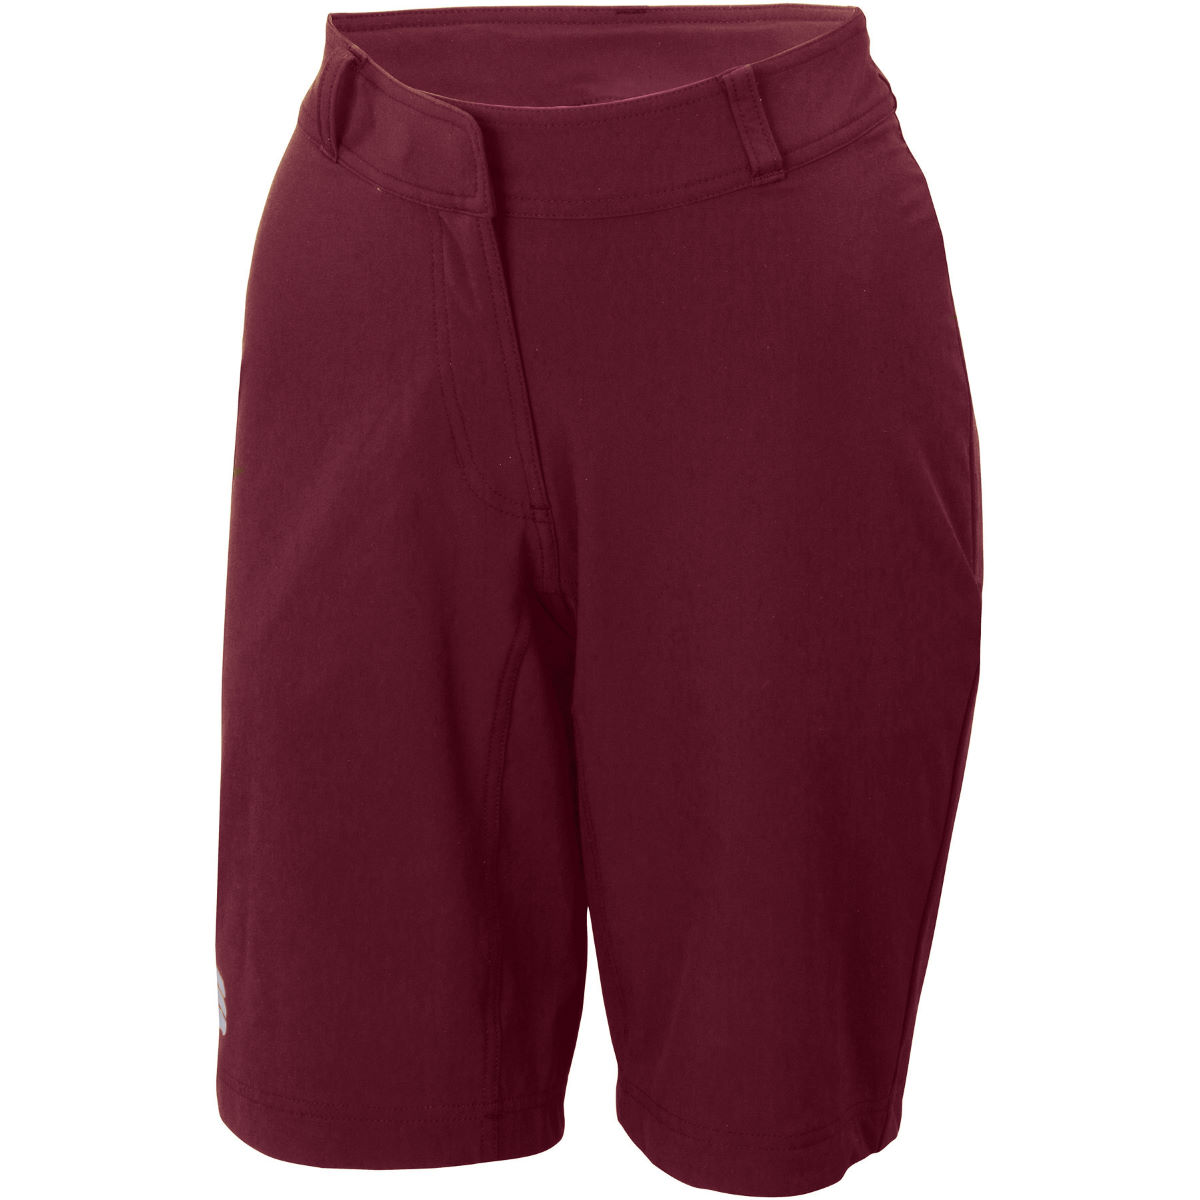 Sportful Womens Giara Over Shorts - Xxl Red Wine  Baggy Shorts